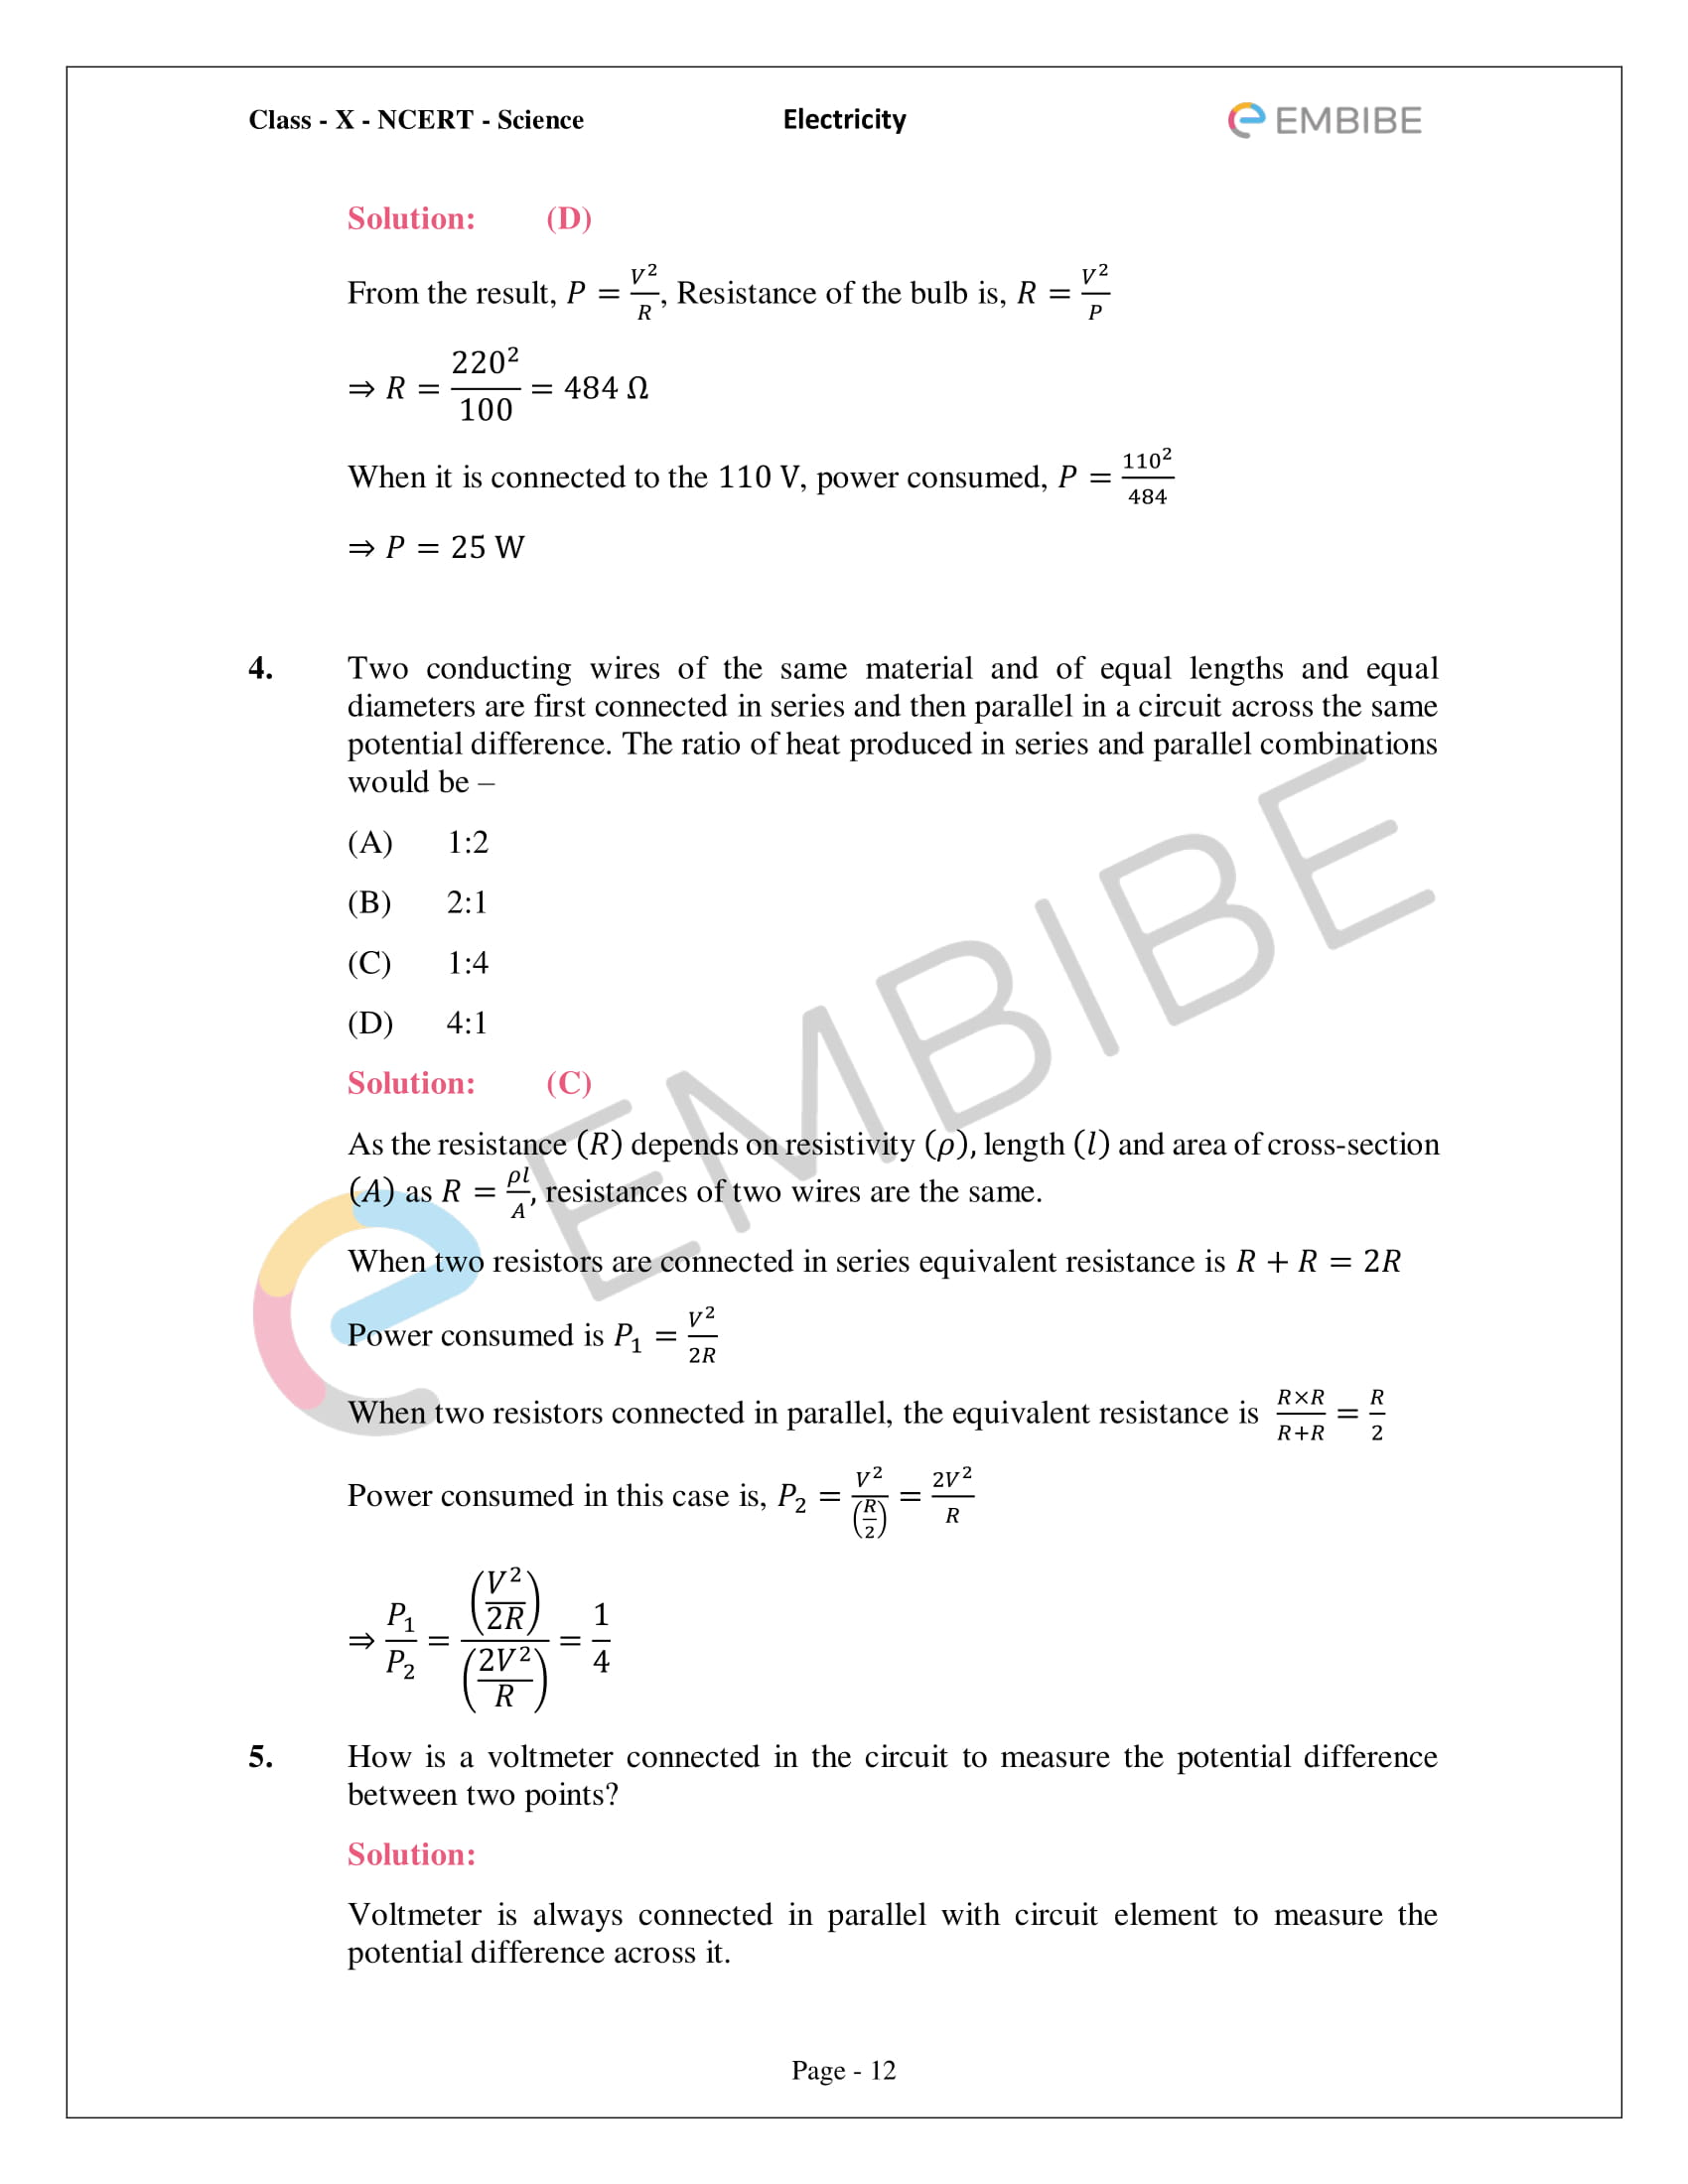 CBSE NCERT Solutions For Class 10 Science Chapter 12 - Electricity - 12